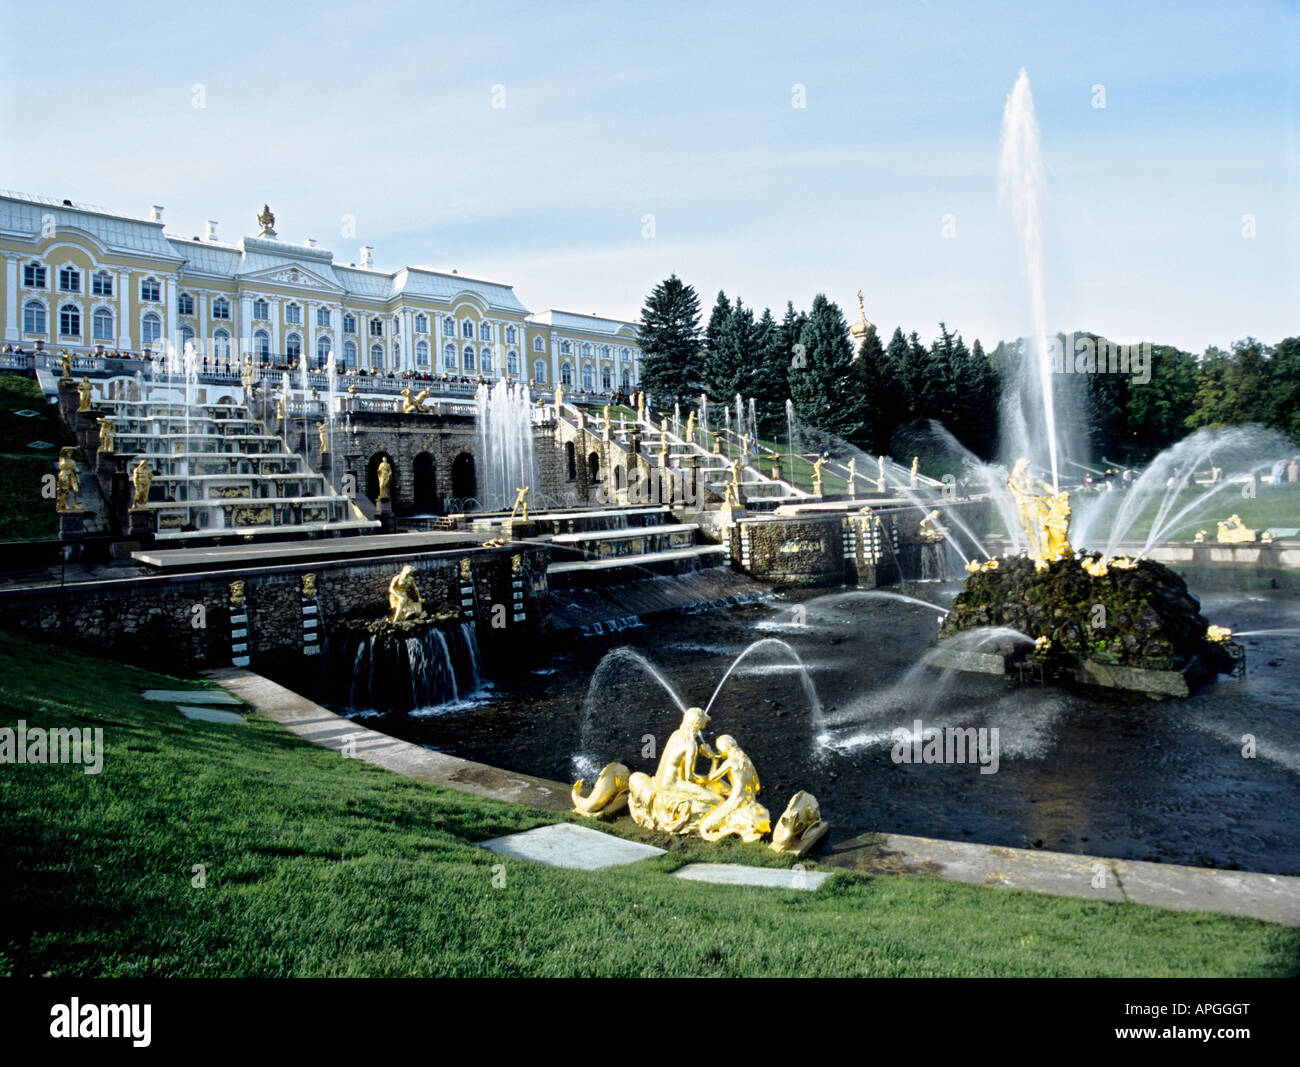 Palace and tumbling waters of the Grand Cascade and Samson's Fountain, Peterhof Palace and Gardens, Petrodvorets, - Stock Image